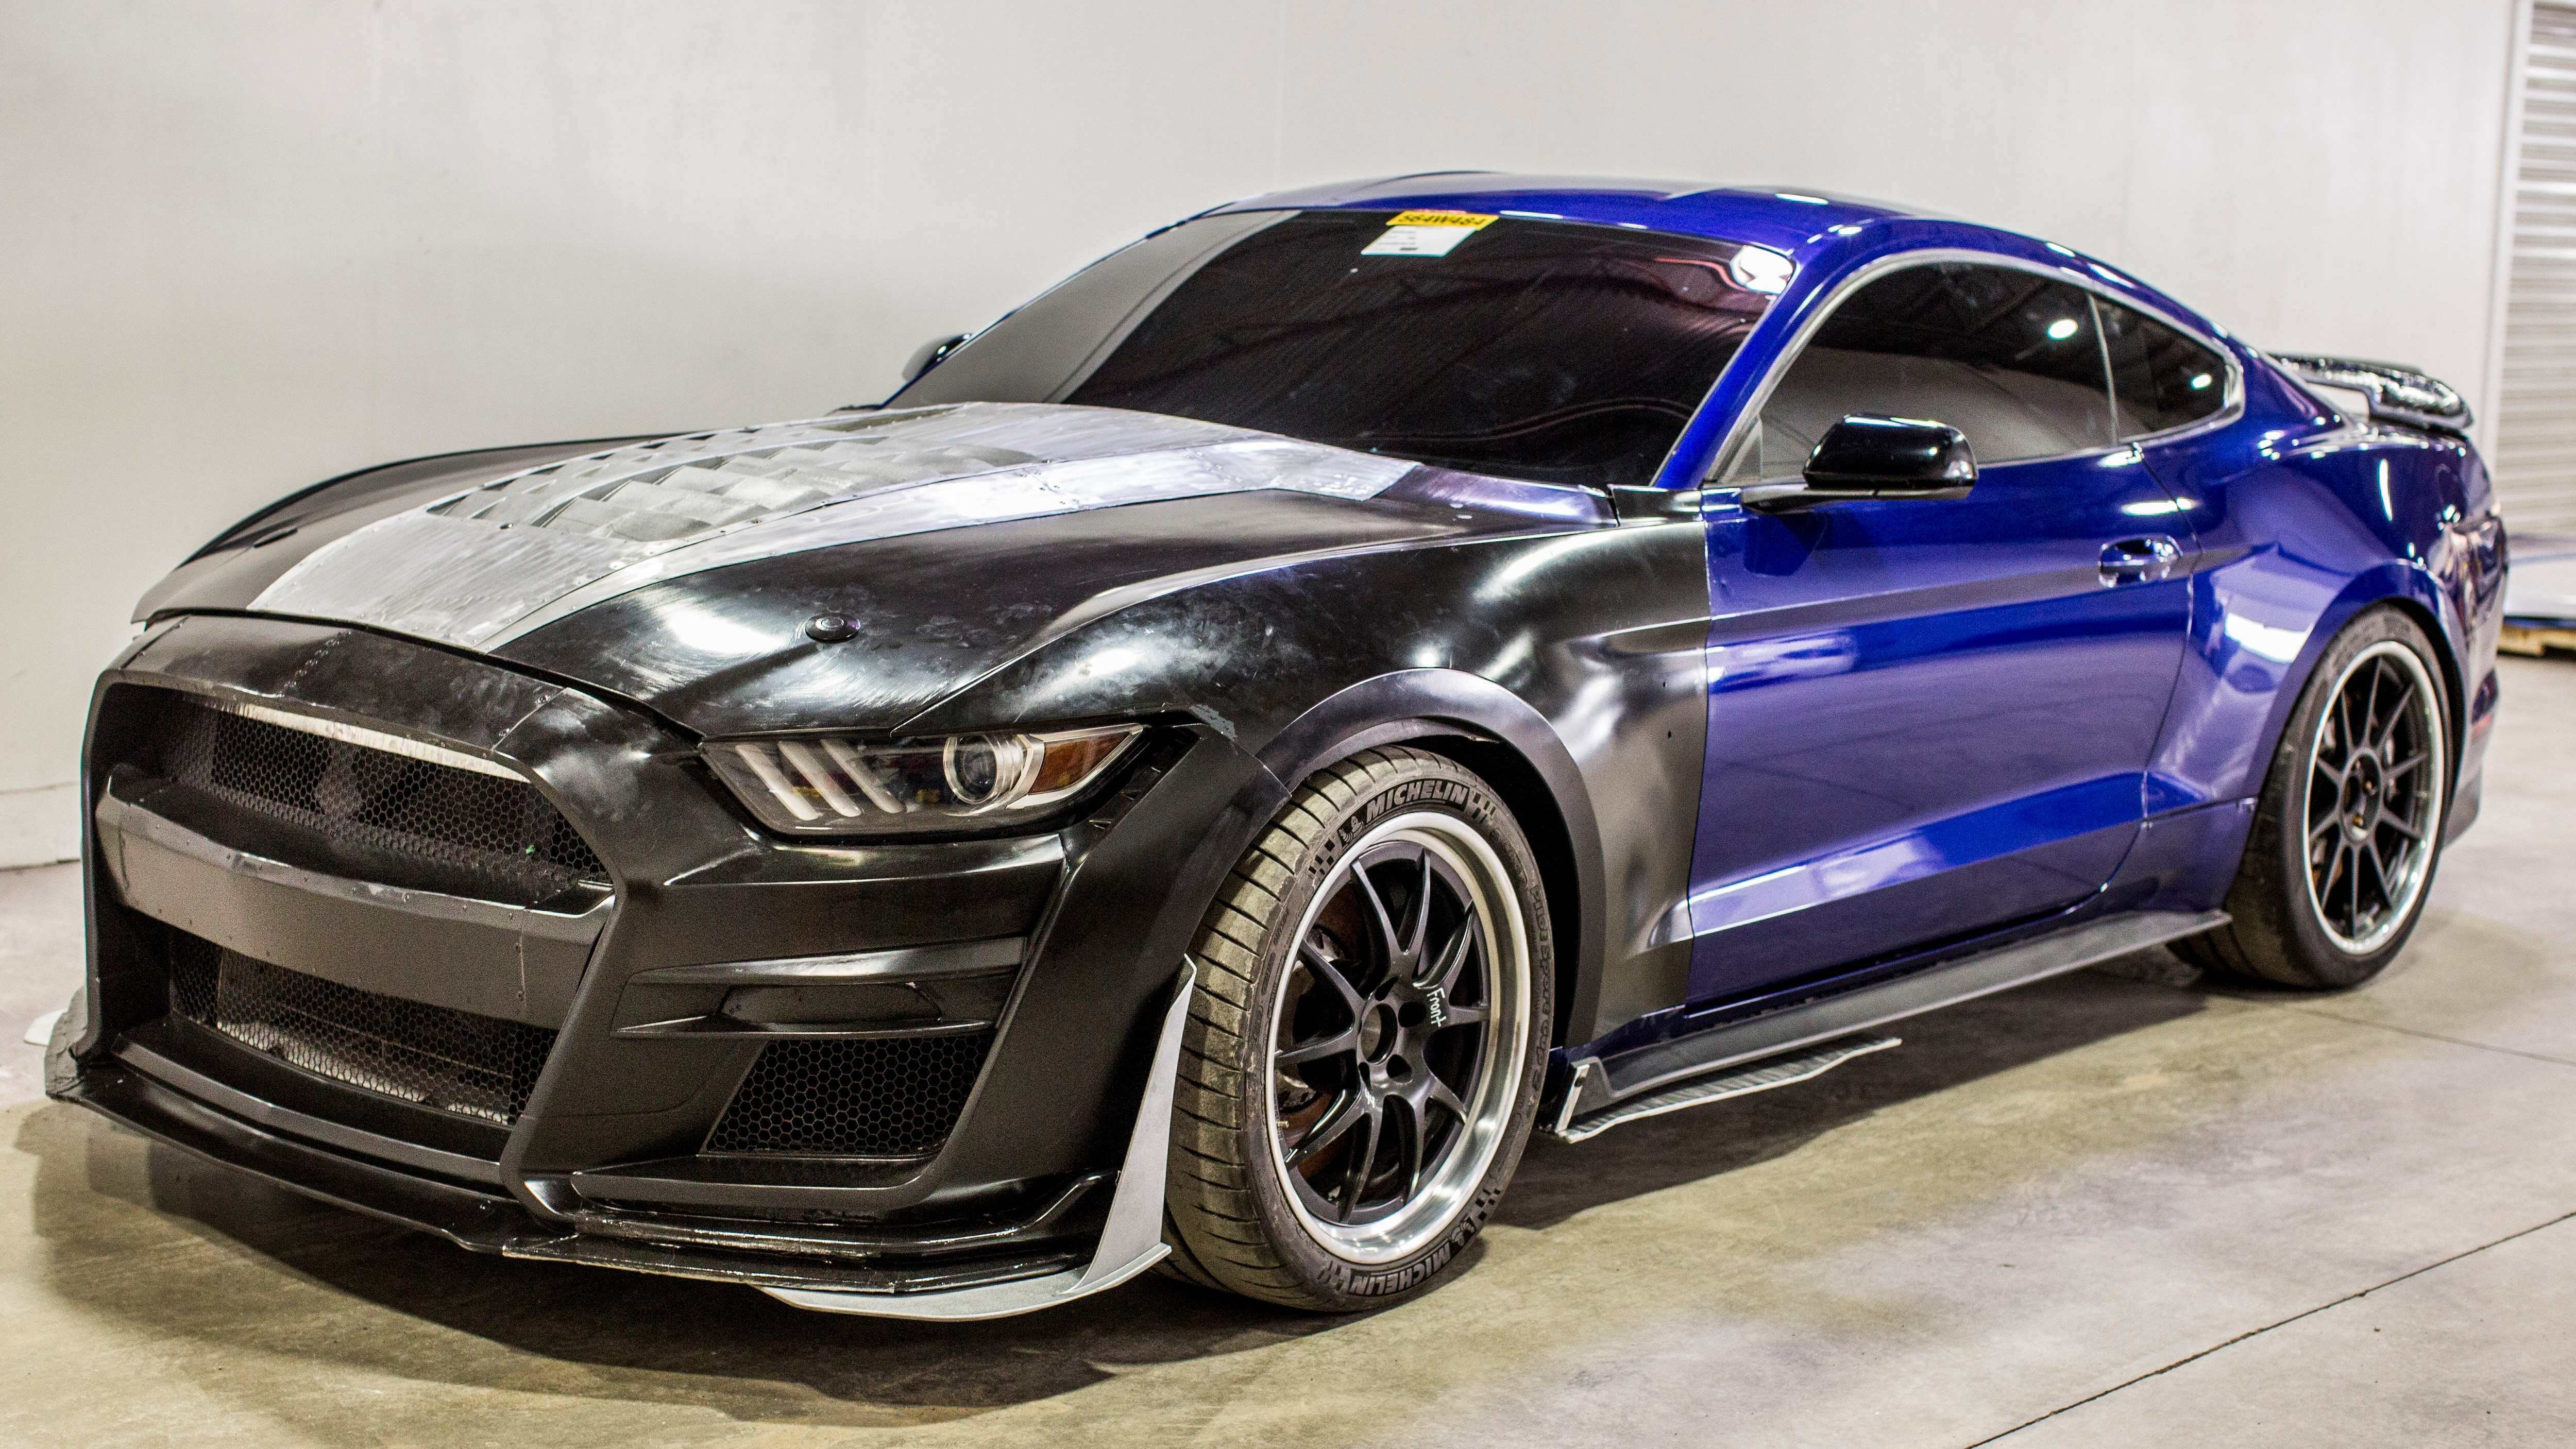 93 The 2020 Ford Mustang Gt500 Performance